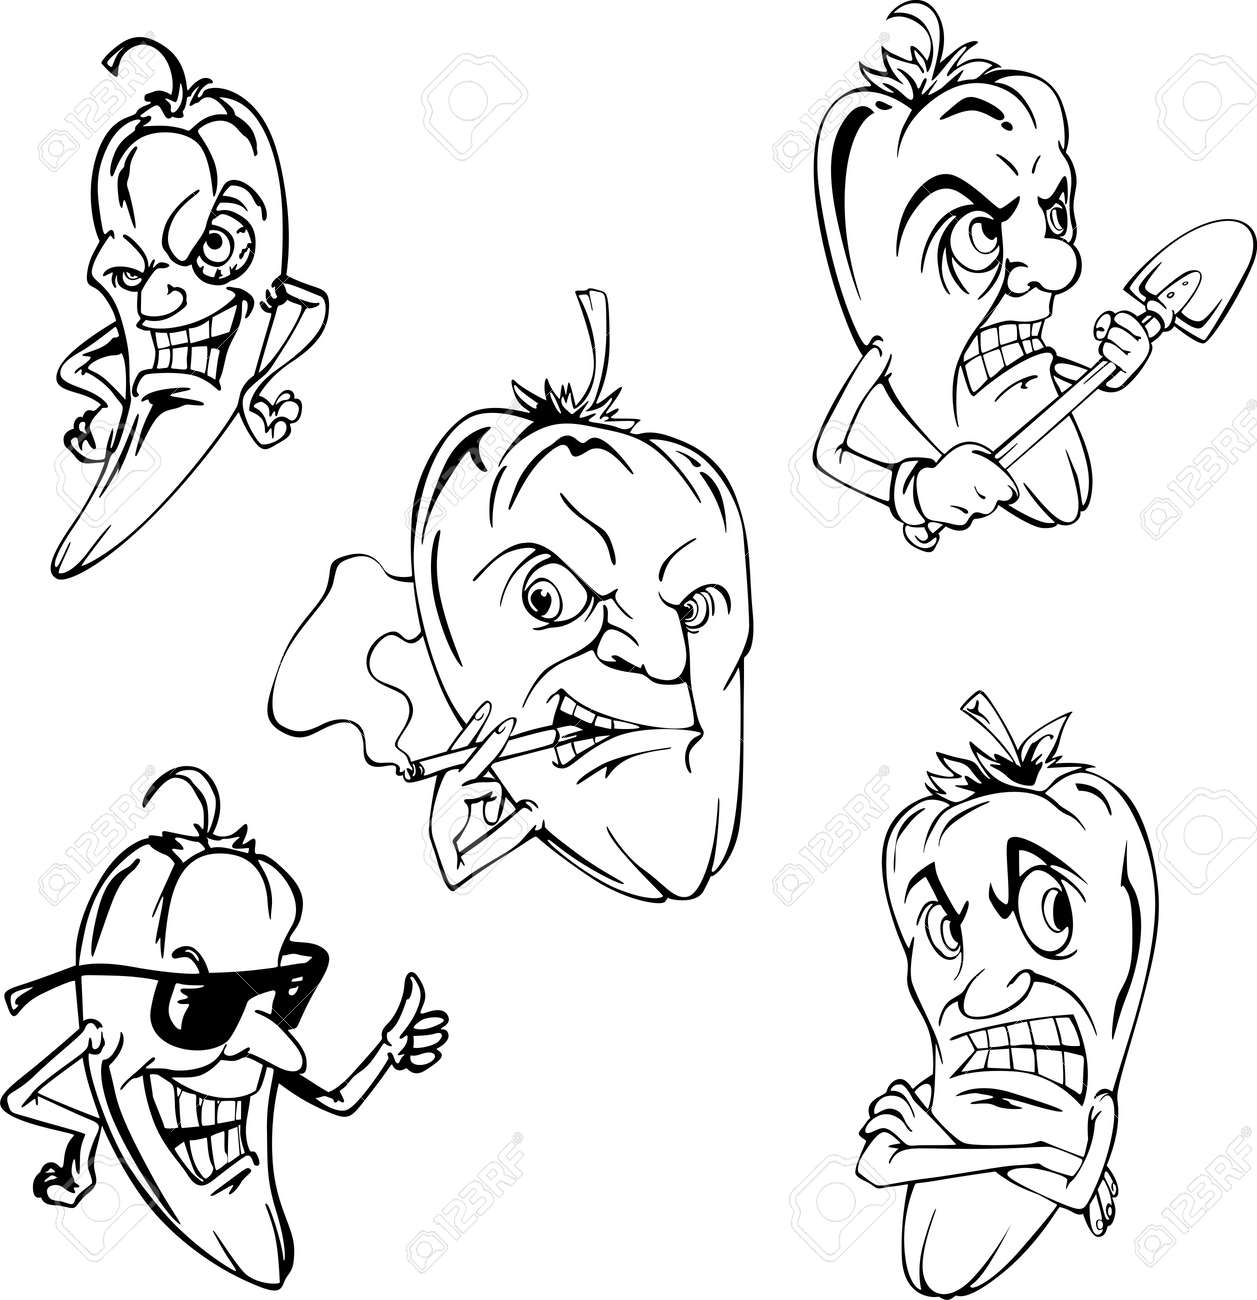 Hot peppers. Set of black and white vector cartoon illustrations. Stock Vector - 13755157